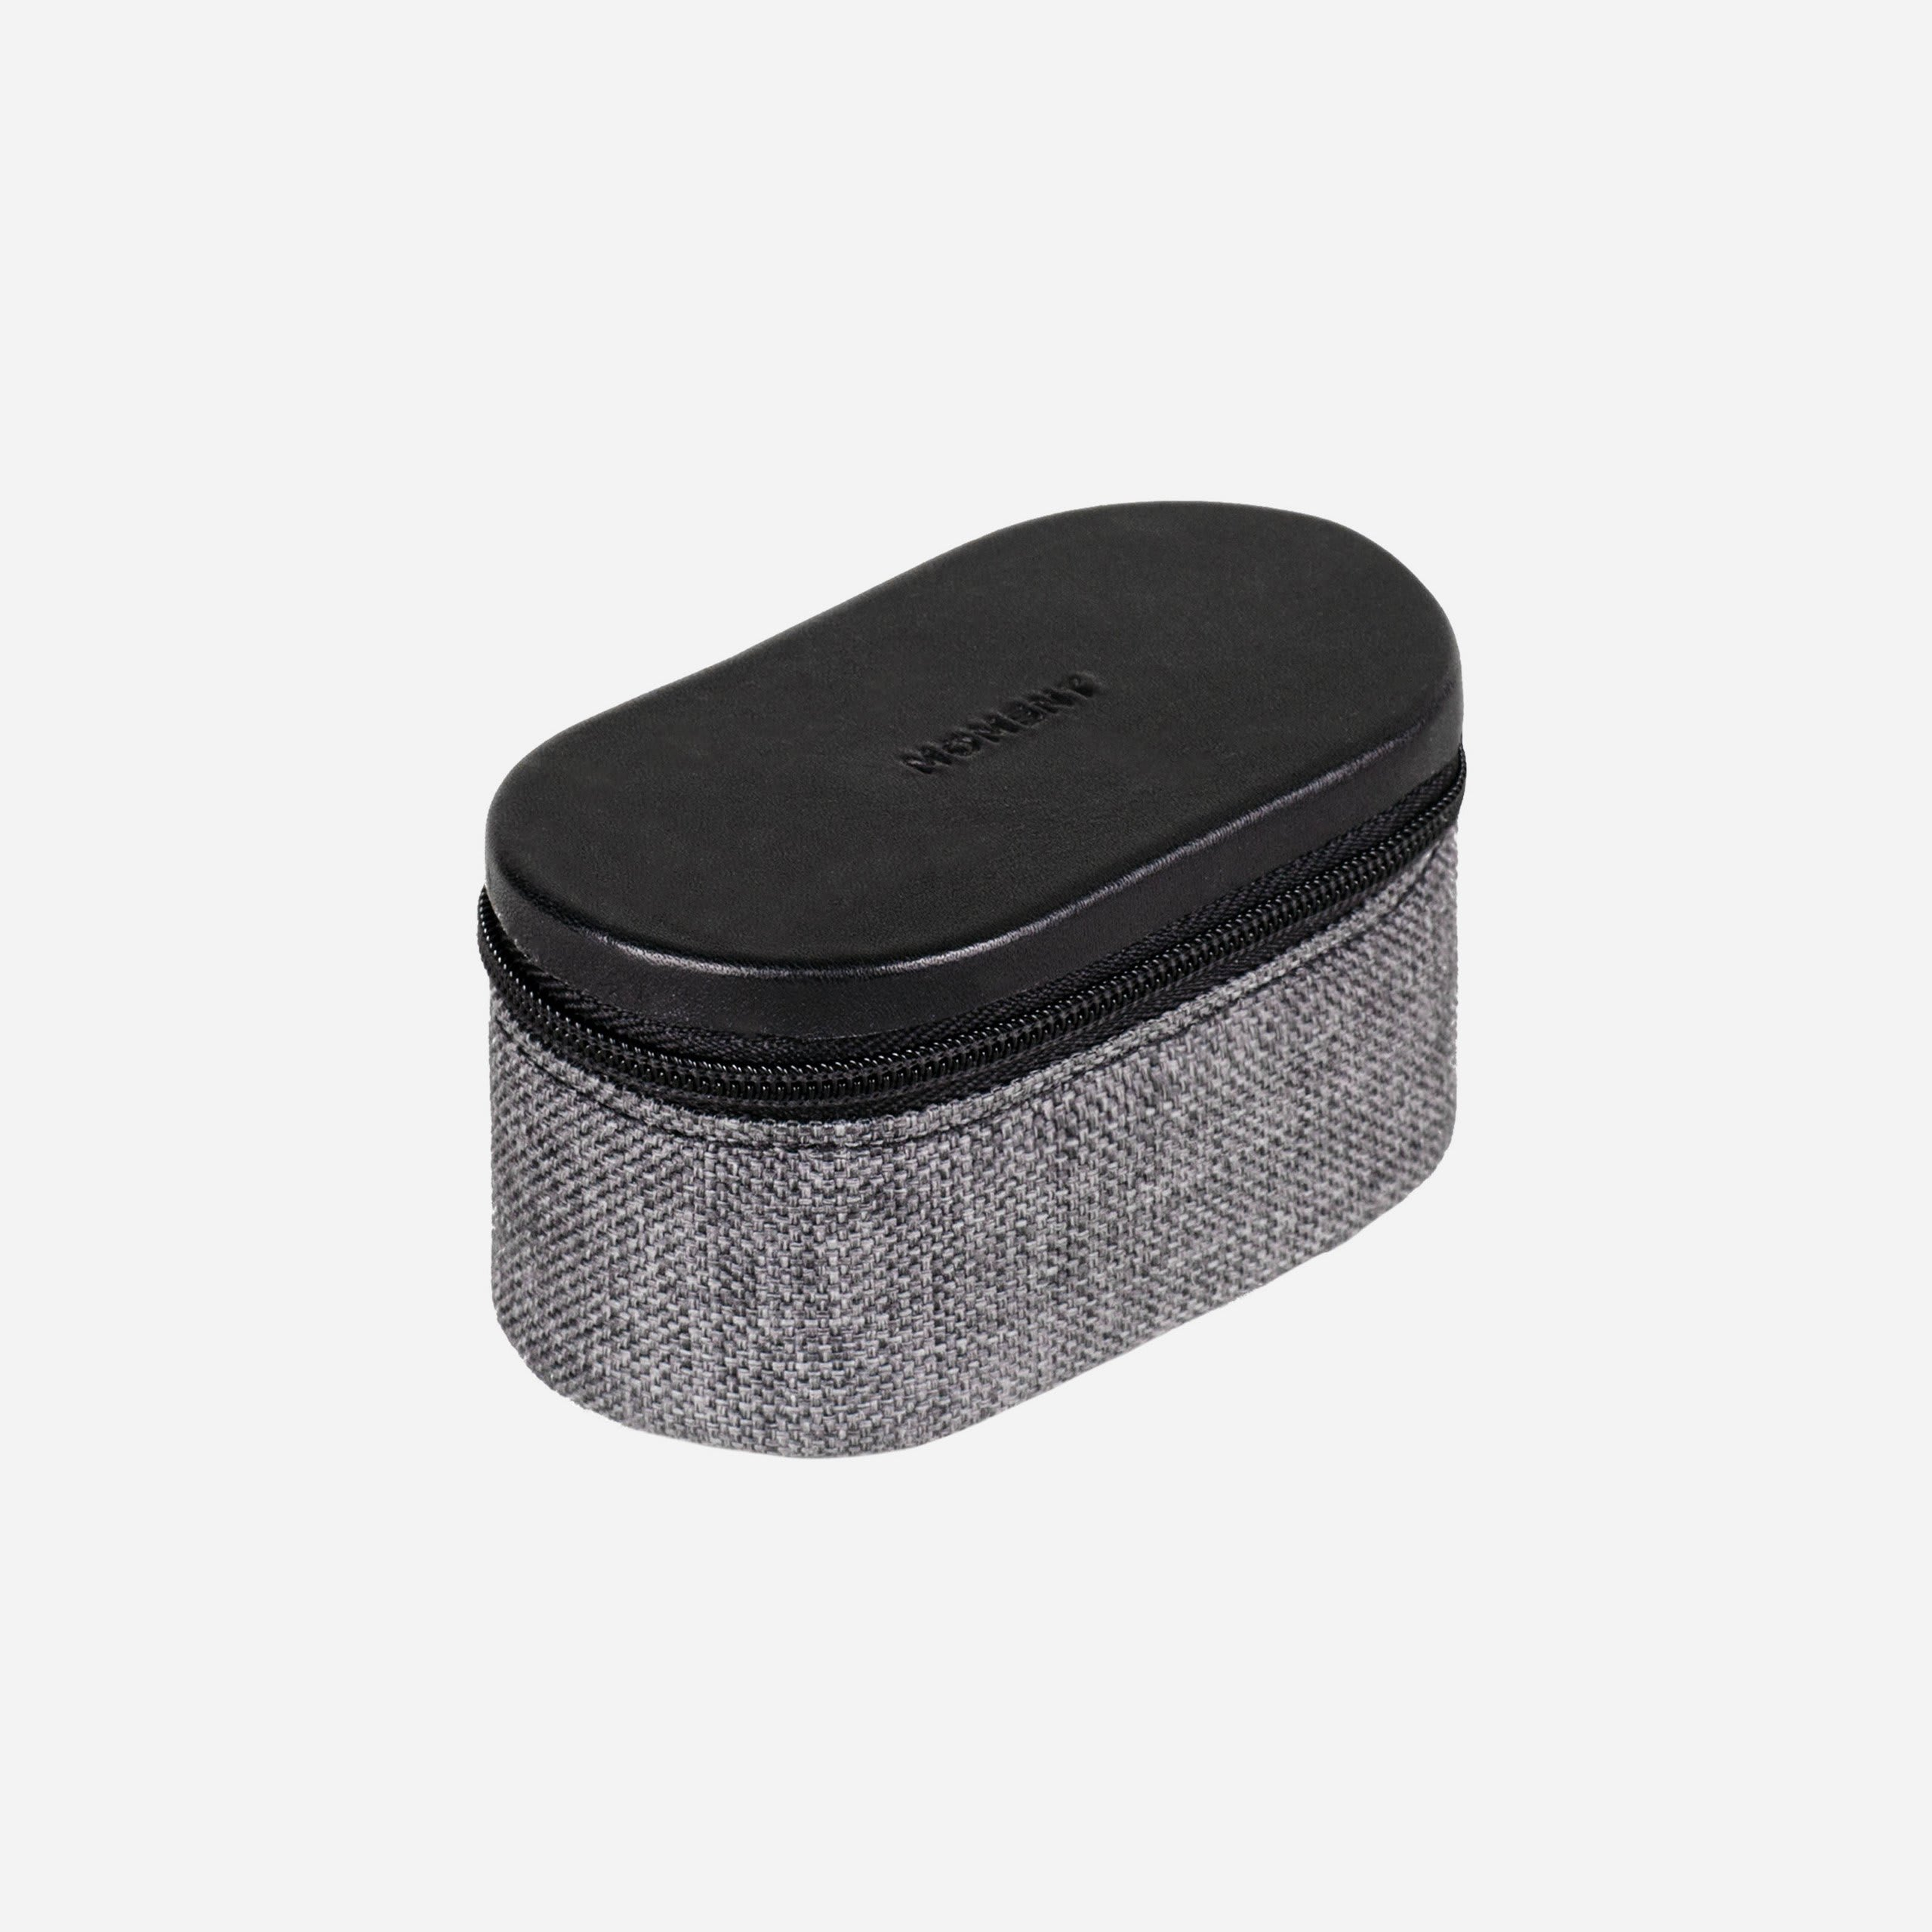 Moment Lens Pouch Side Angled